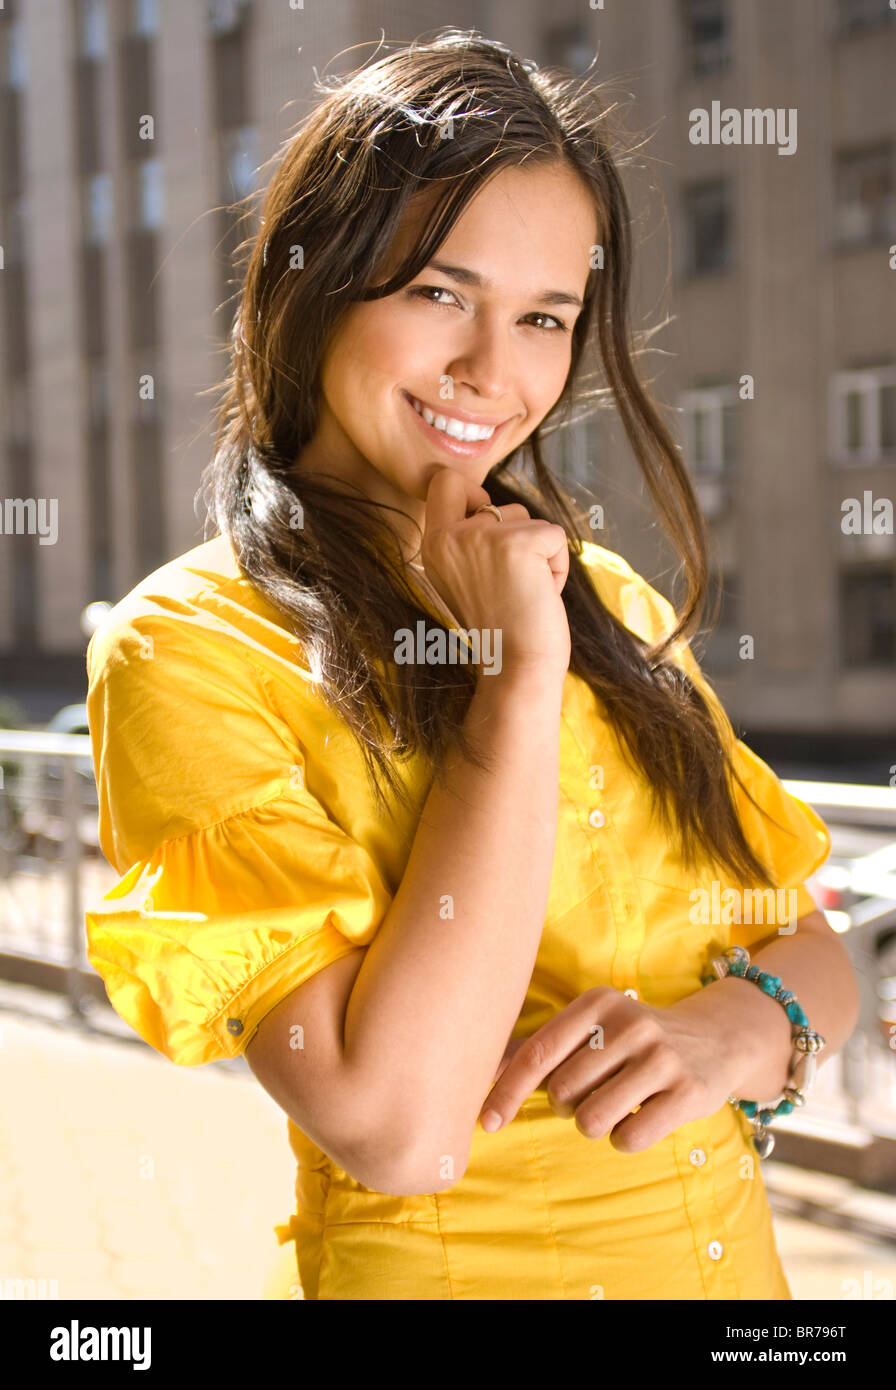 Closeup portrait of a laughing young pretty girl - Stock Image